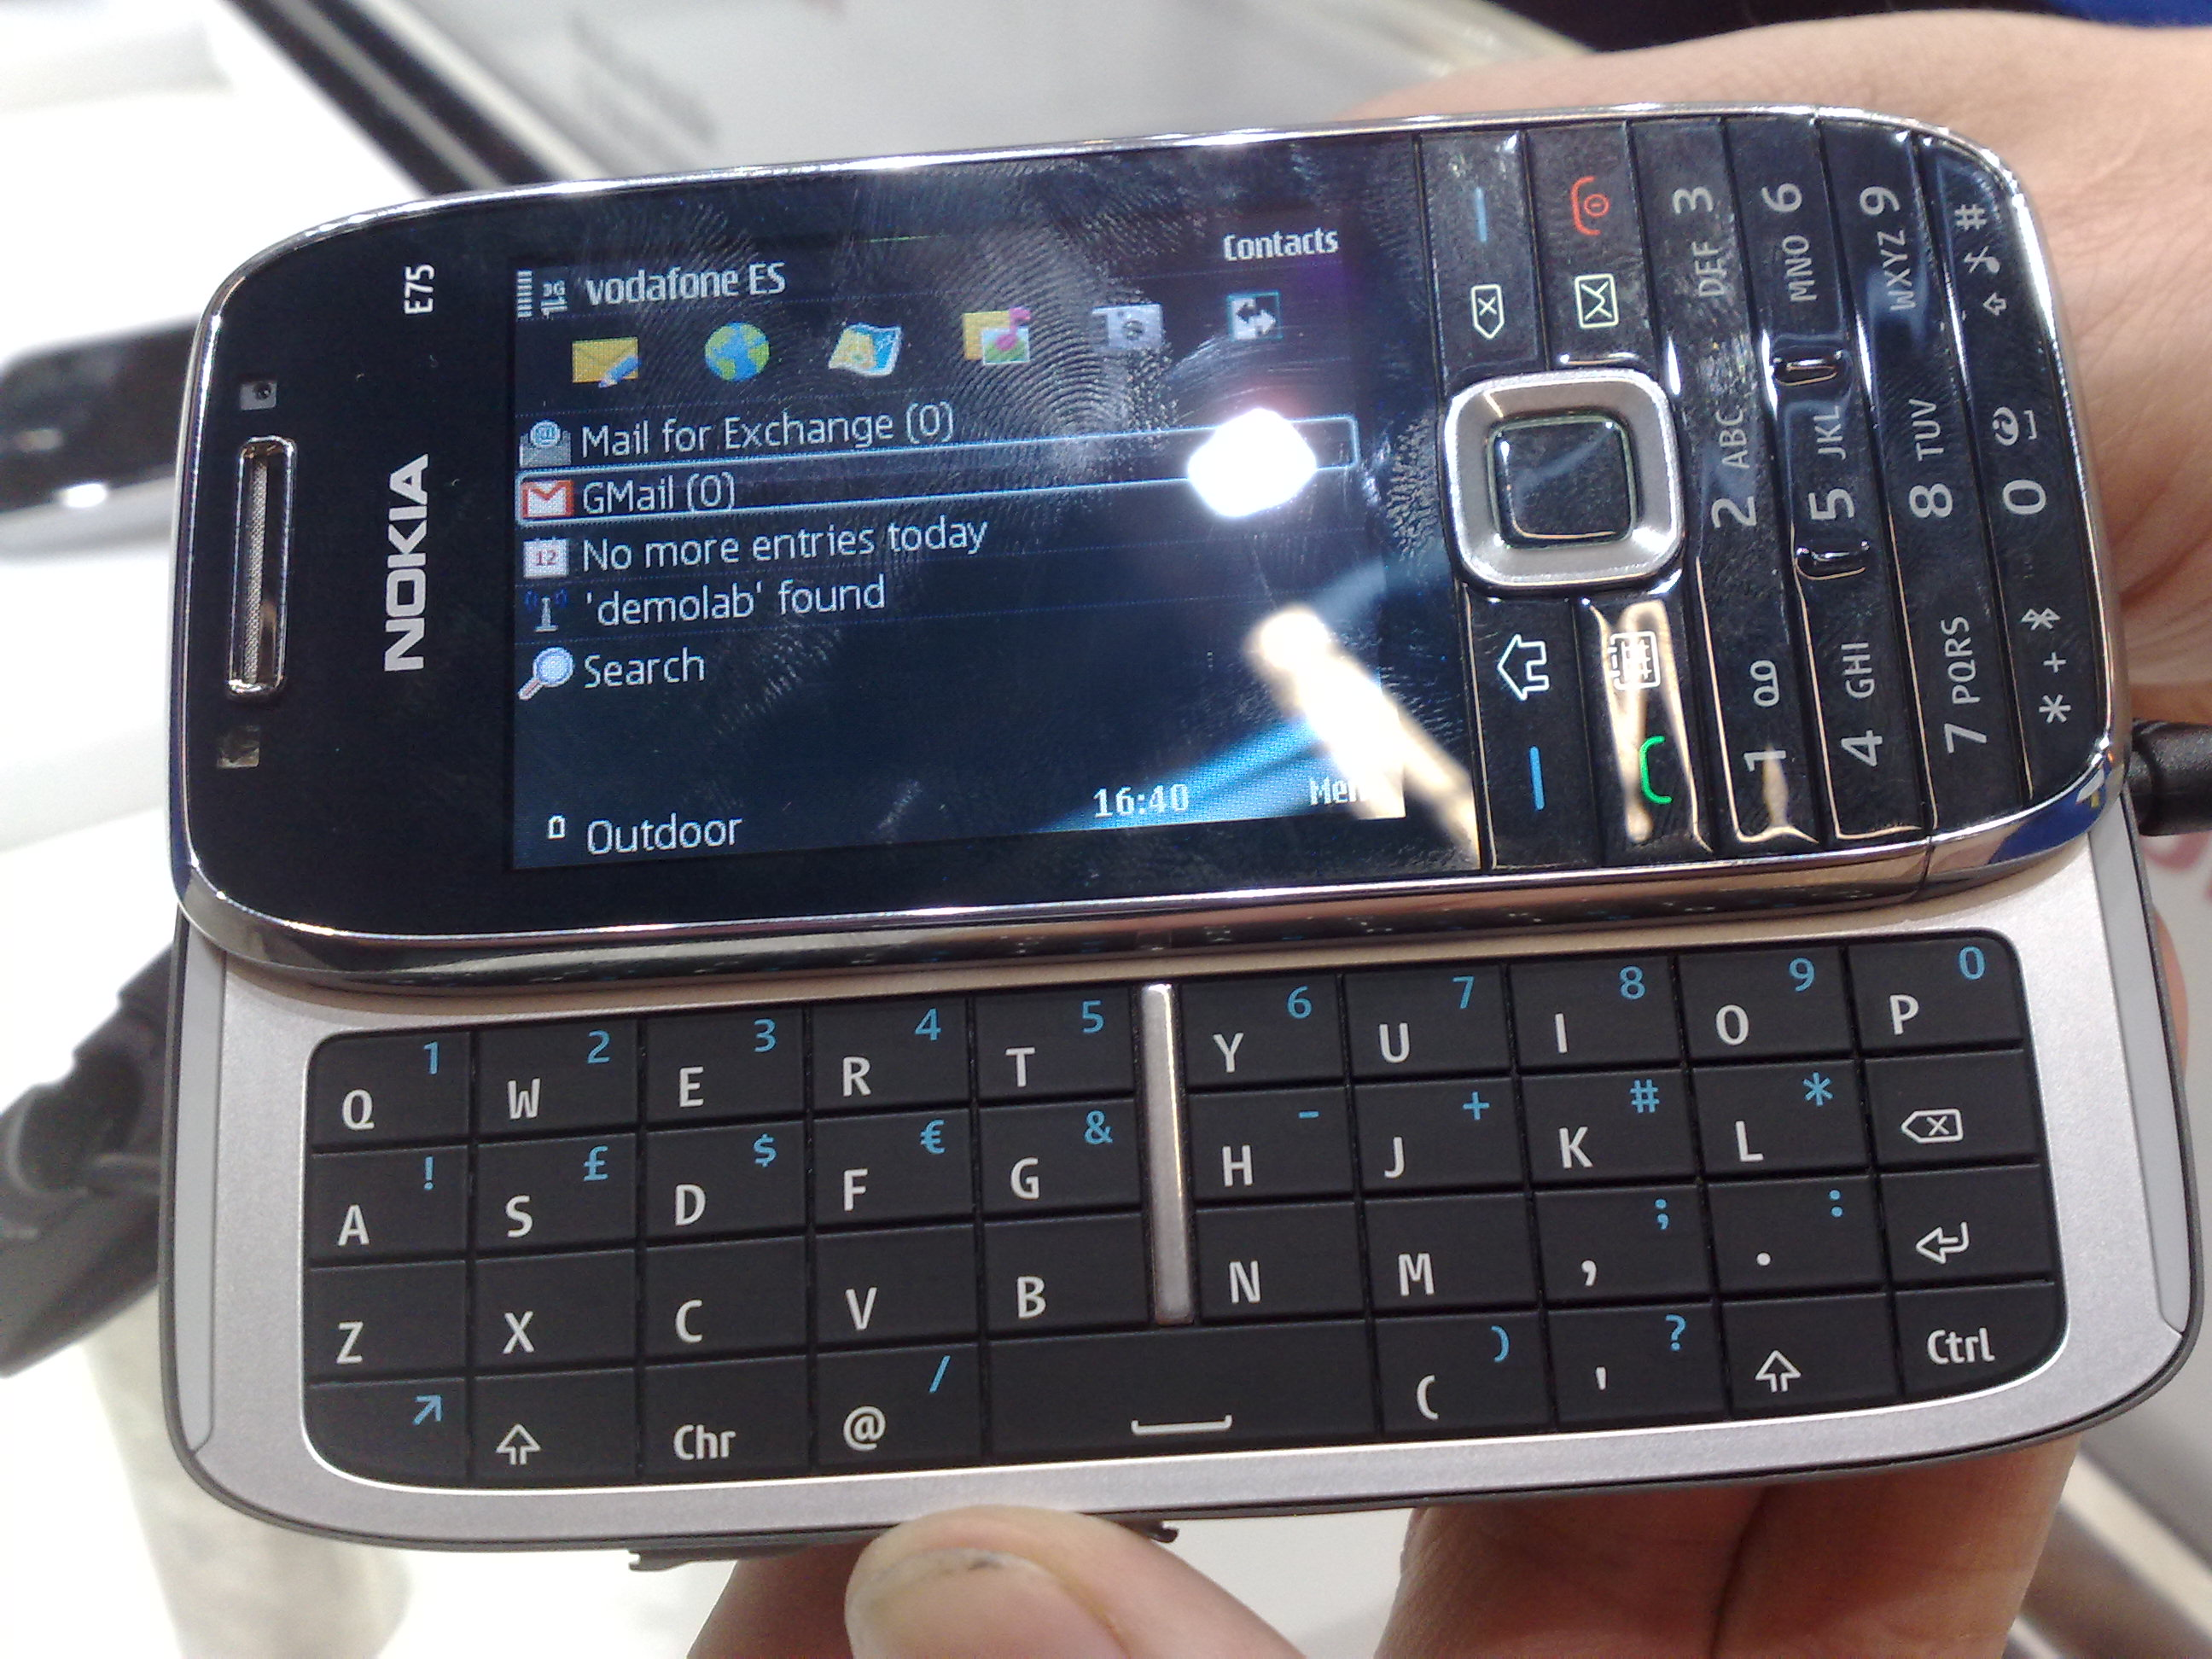 Nokia E75 - Wikipedia, the free encyclopedia